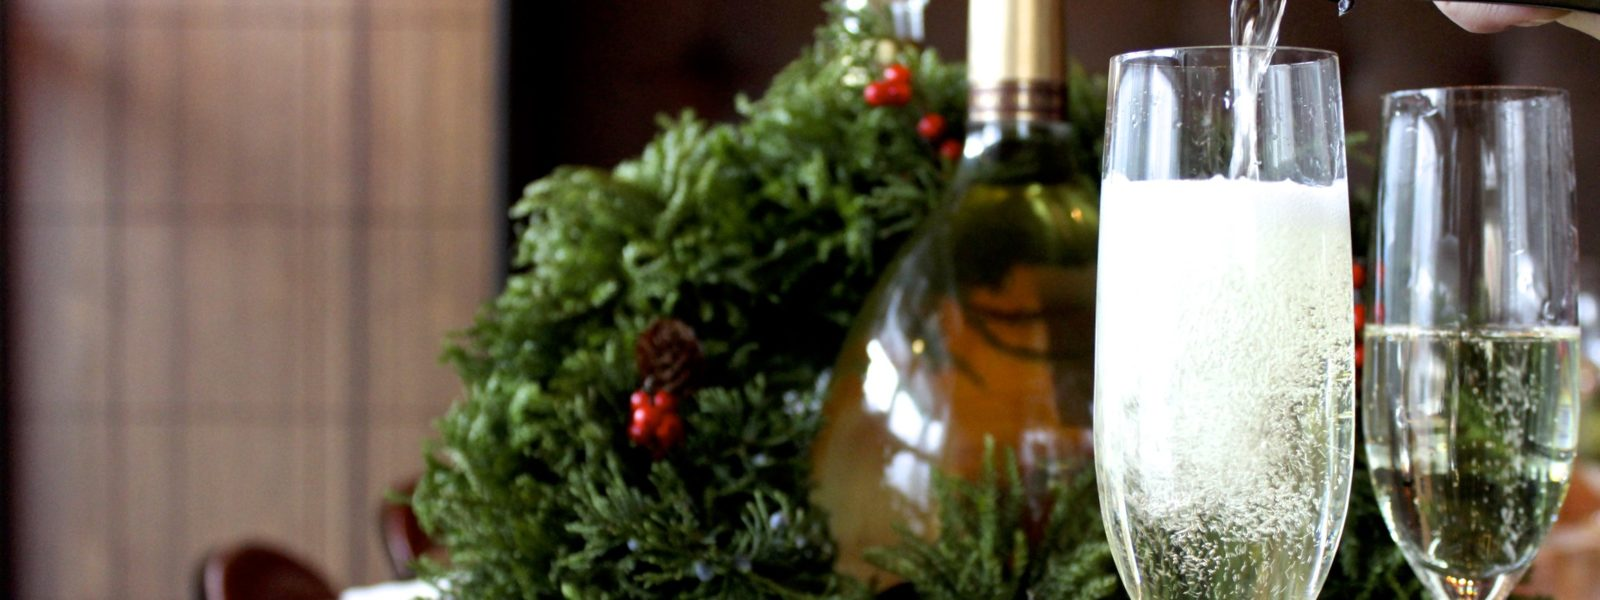 A Christmas wreath around a bottle of wine, and two champagne flutes being filled.